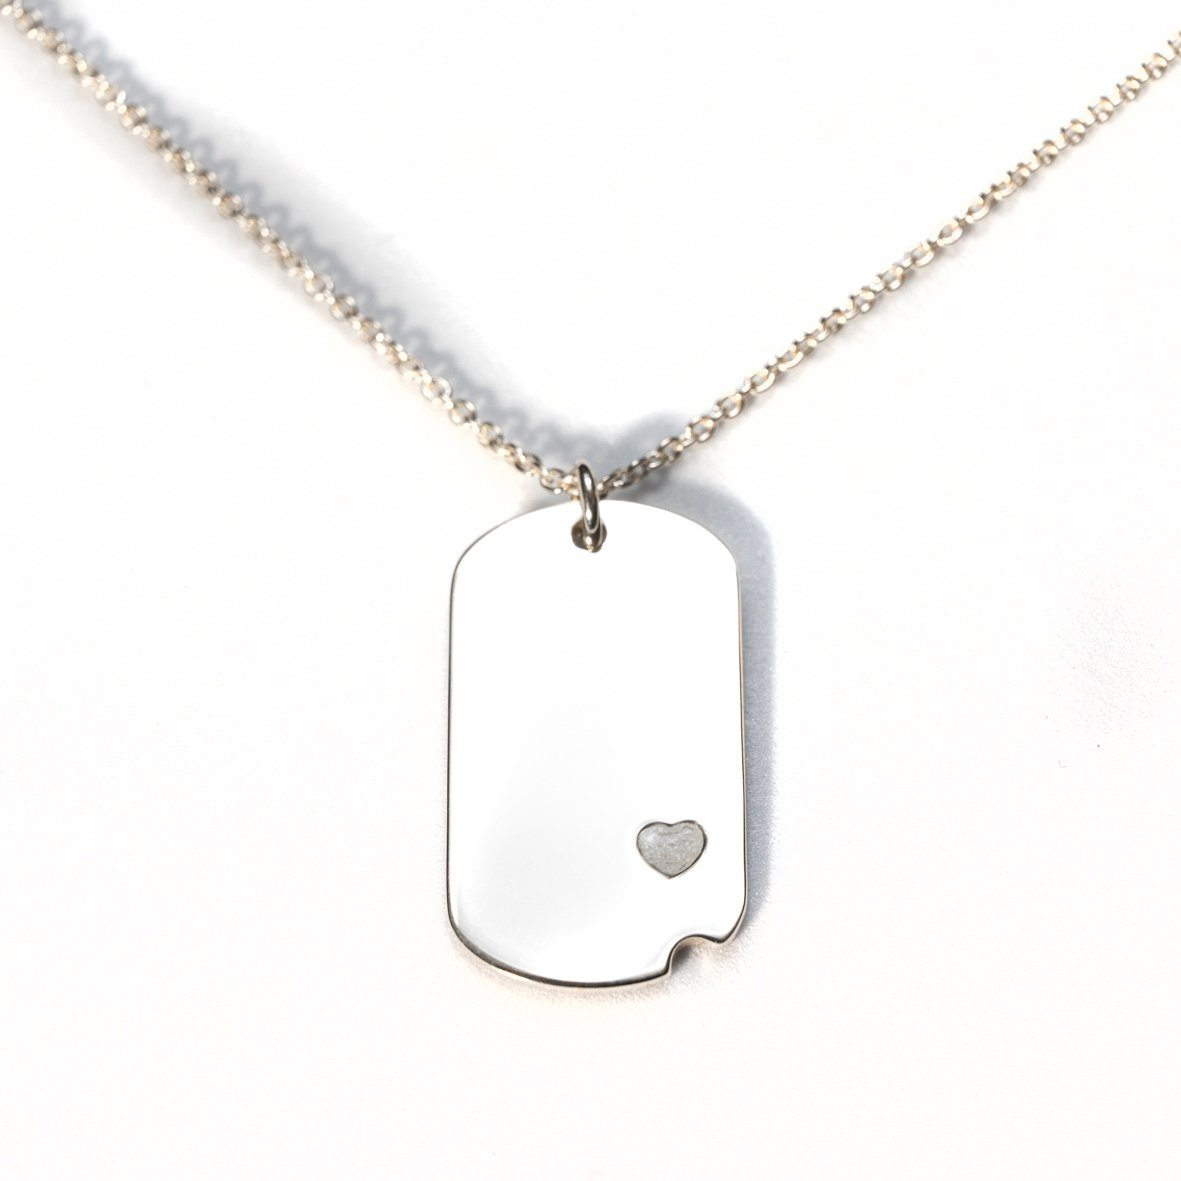 Sterling-Silver Dog Tag with Everence Inlay - Small Everence Pearl